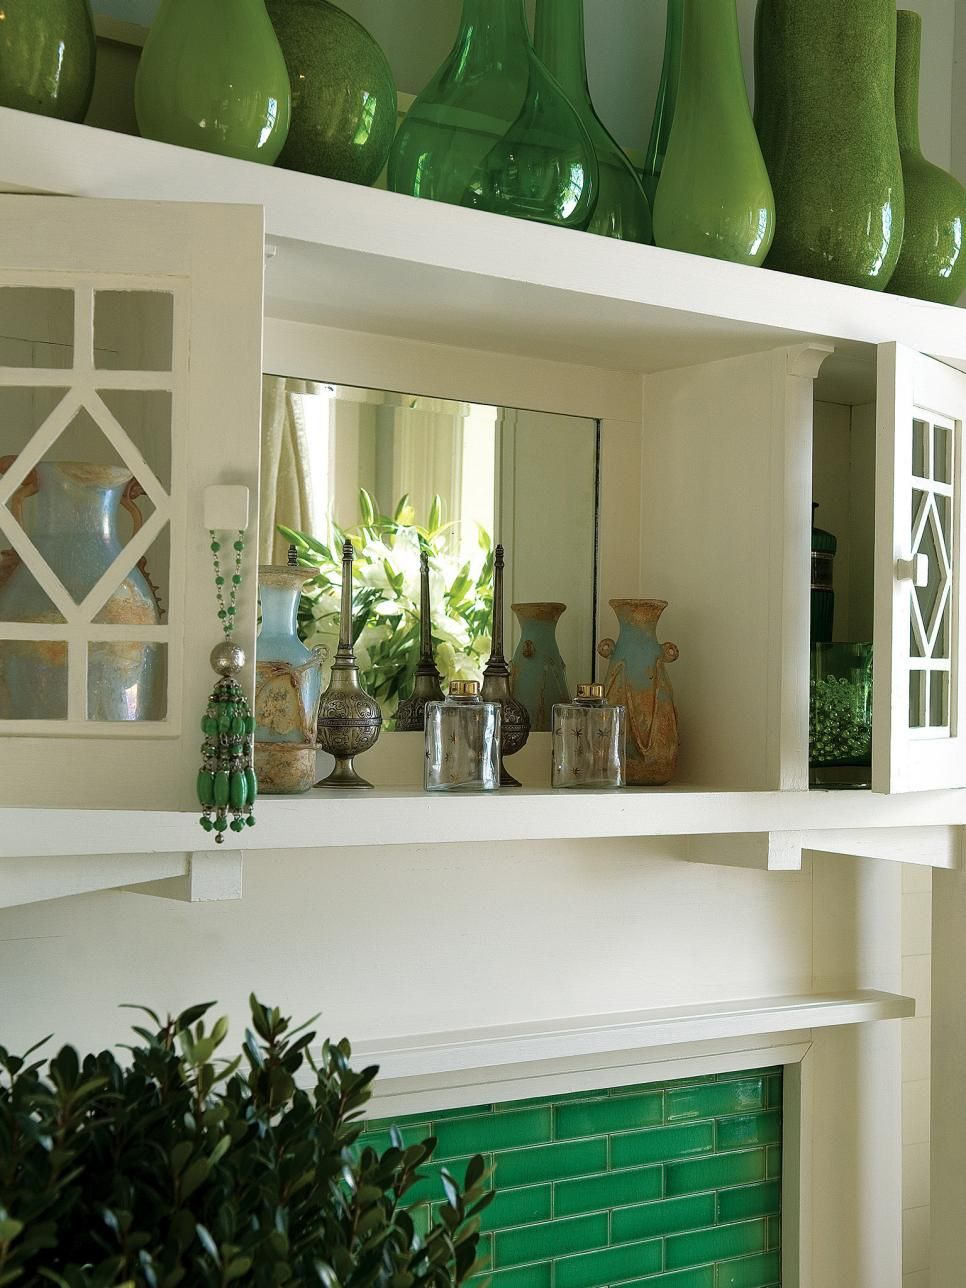 Decorating With Emerald Green - Green Decorating Ideas   HGTV